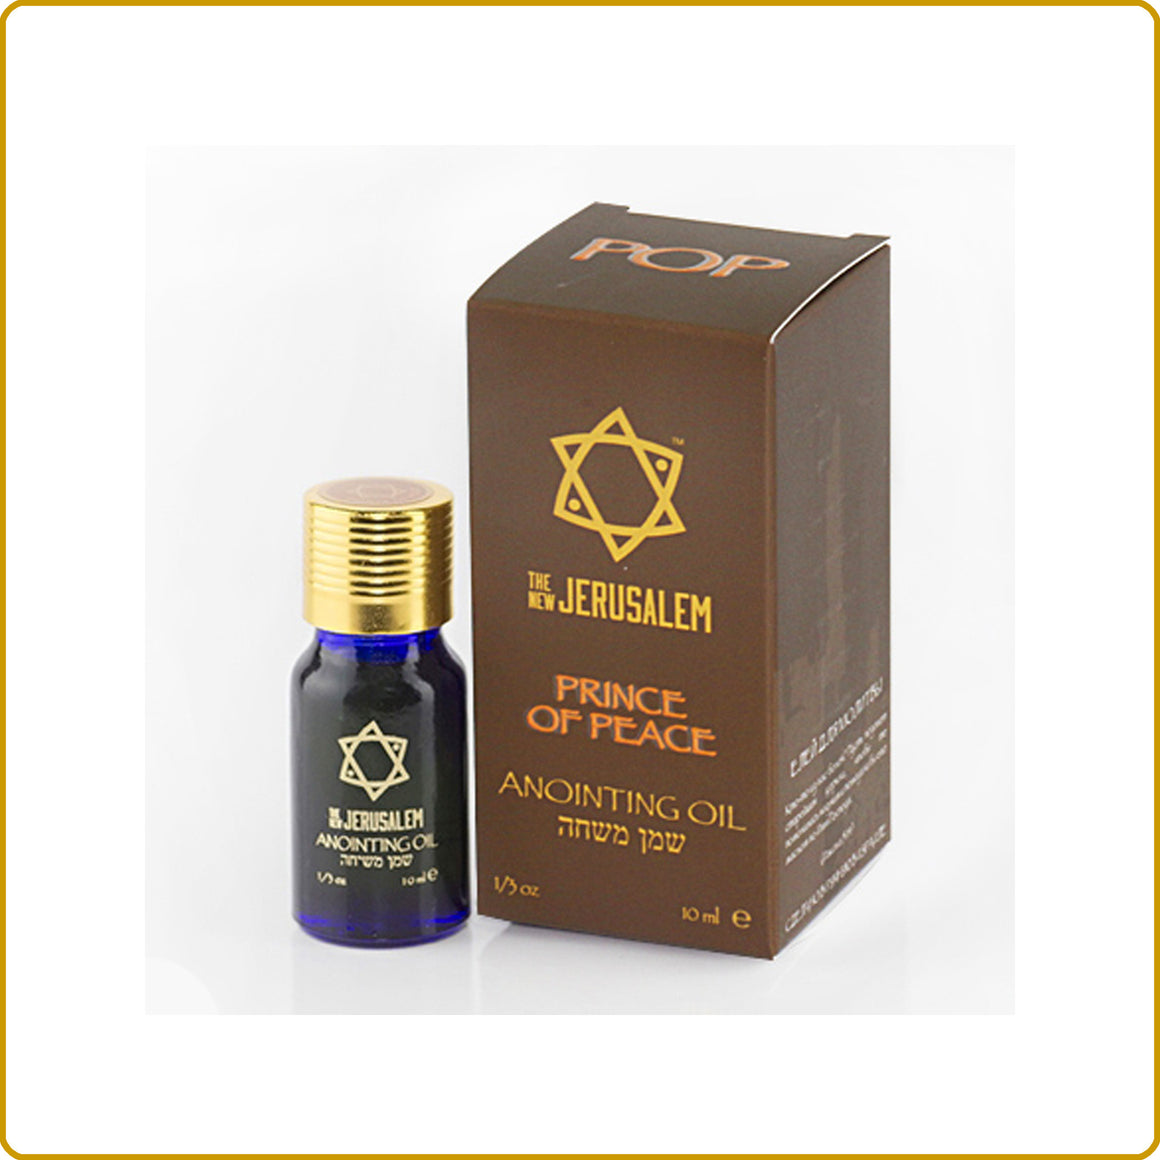 Prince of Peace Blessing Oil 10ml.